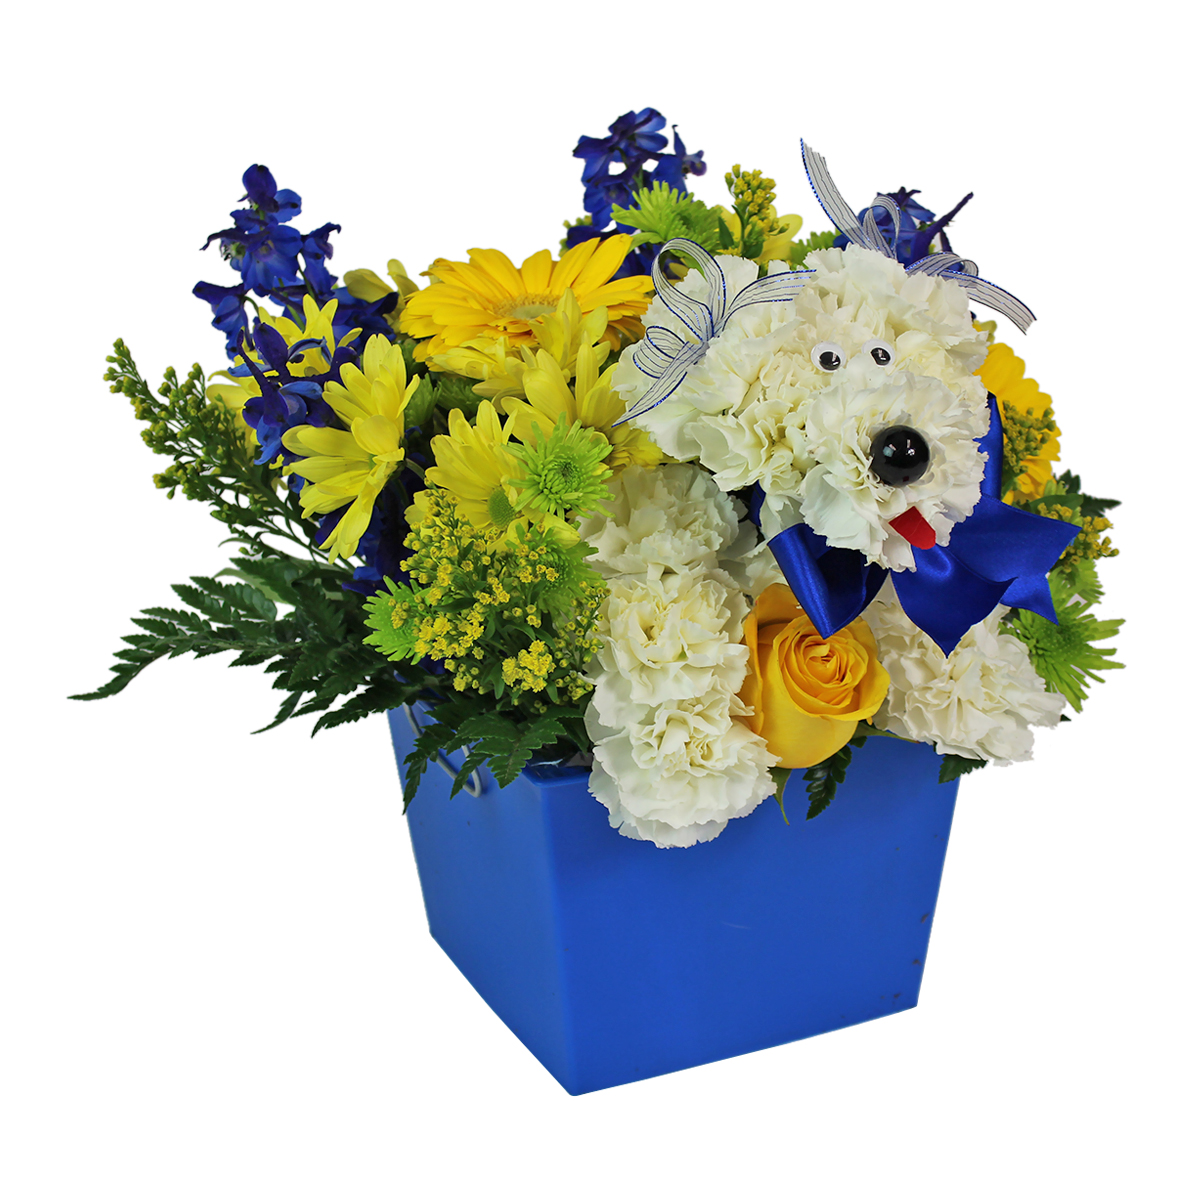 Voted best florist and flower shop in las vegas by readers of las puppy love male izmirmasajfo